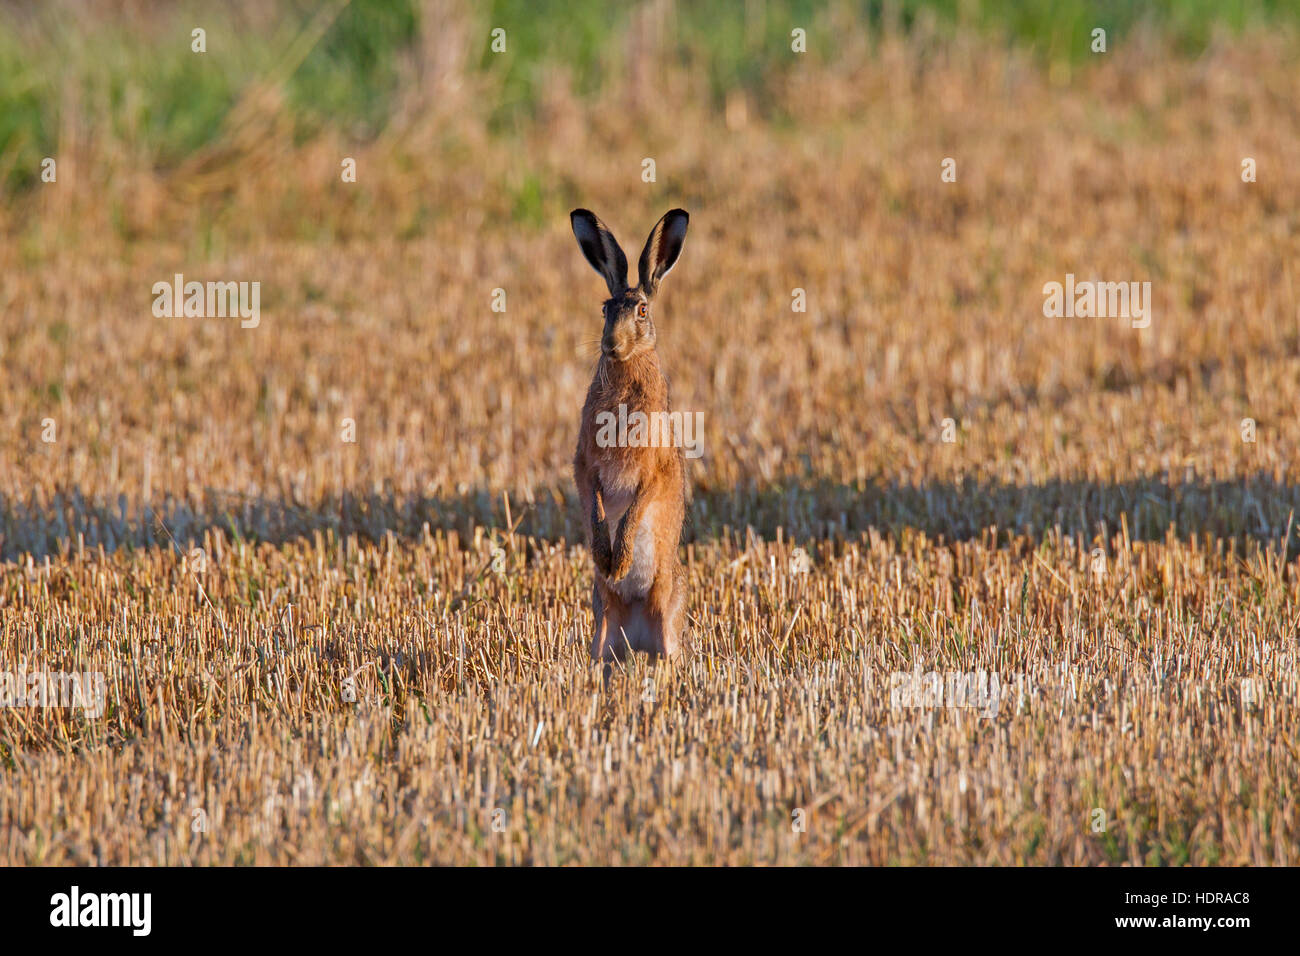 Alert European brown hare (Lepus europaeus) standing upright in stubblefield - Stock Image